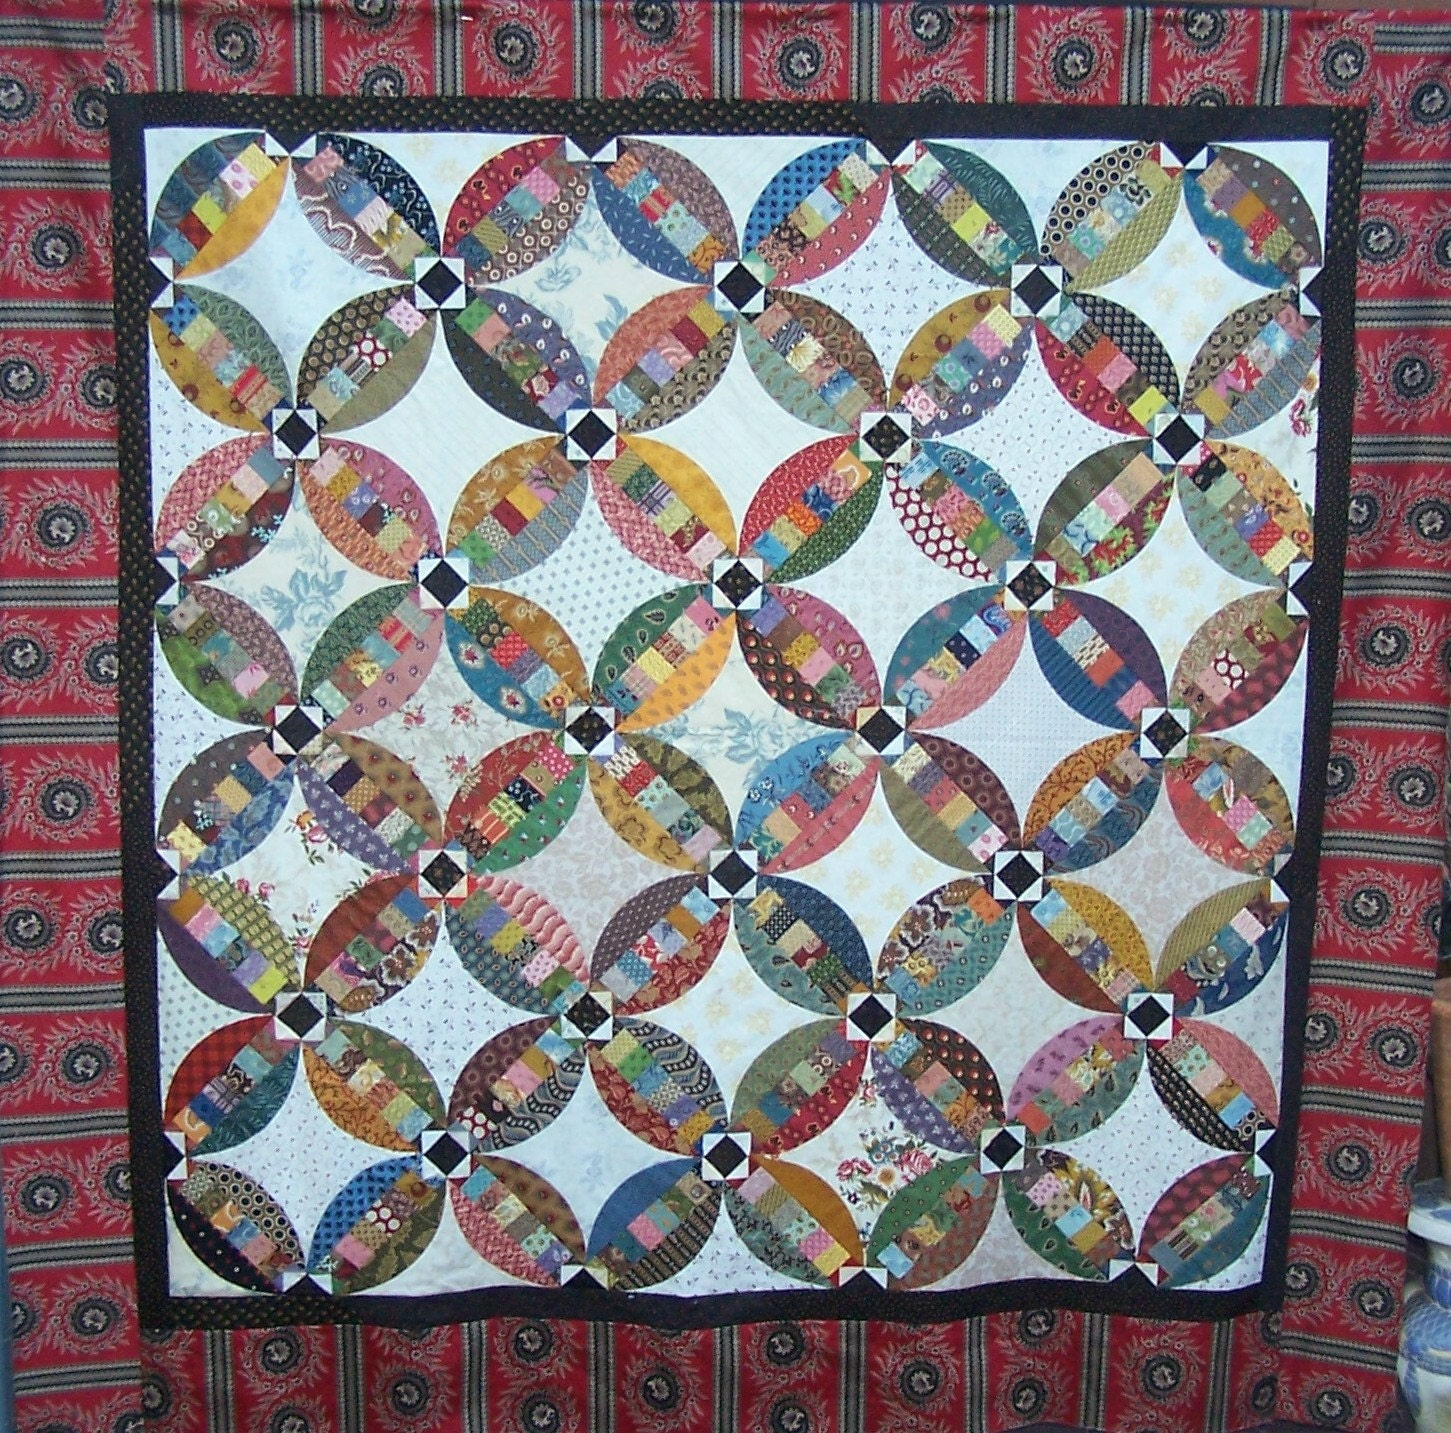 faux wedding ring quilt pattern by patchworkfun on etsy